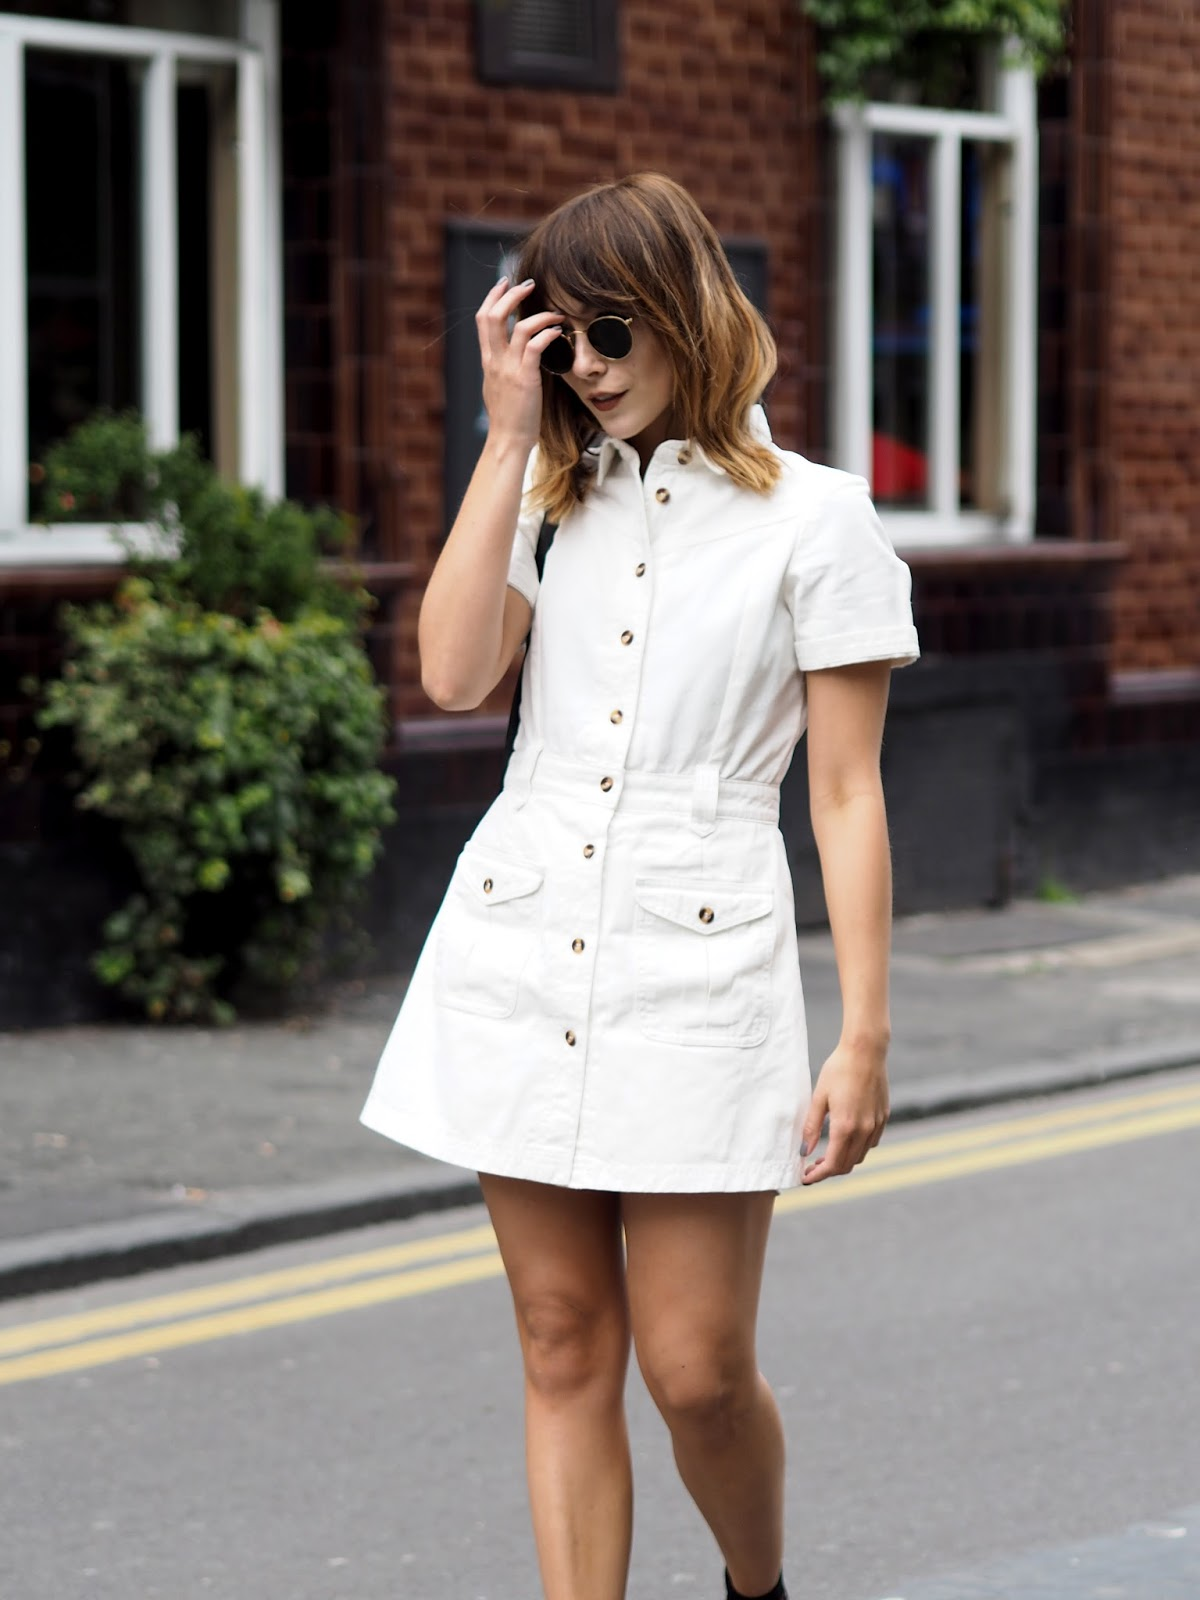 Relaxed weekend look, white sixties style dress by Lost Ink